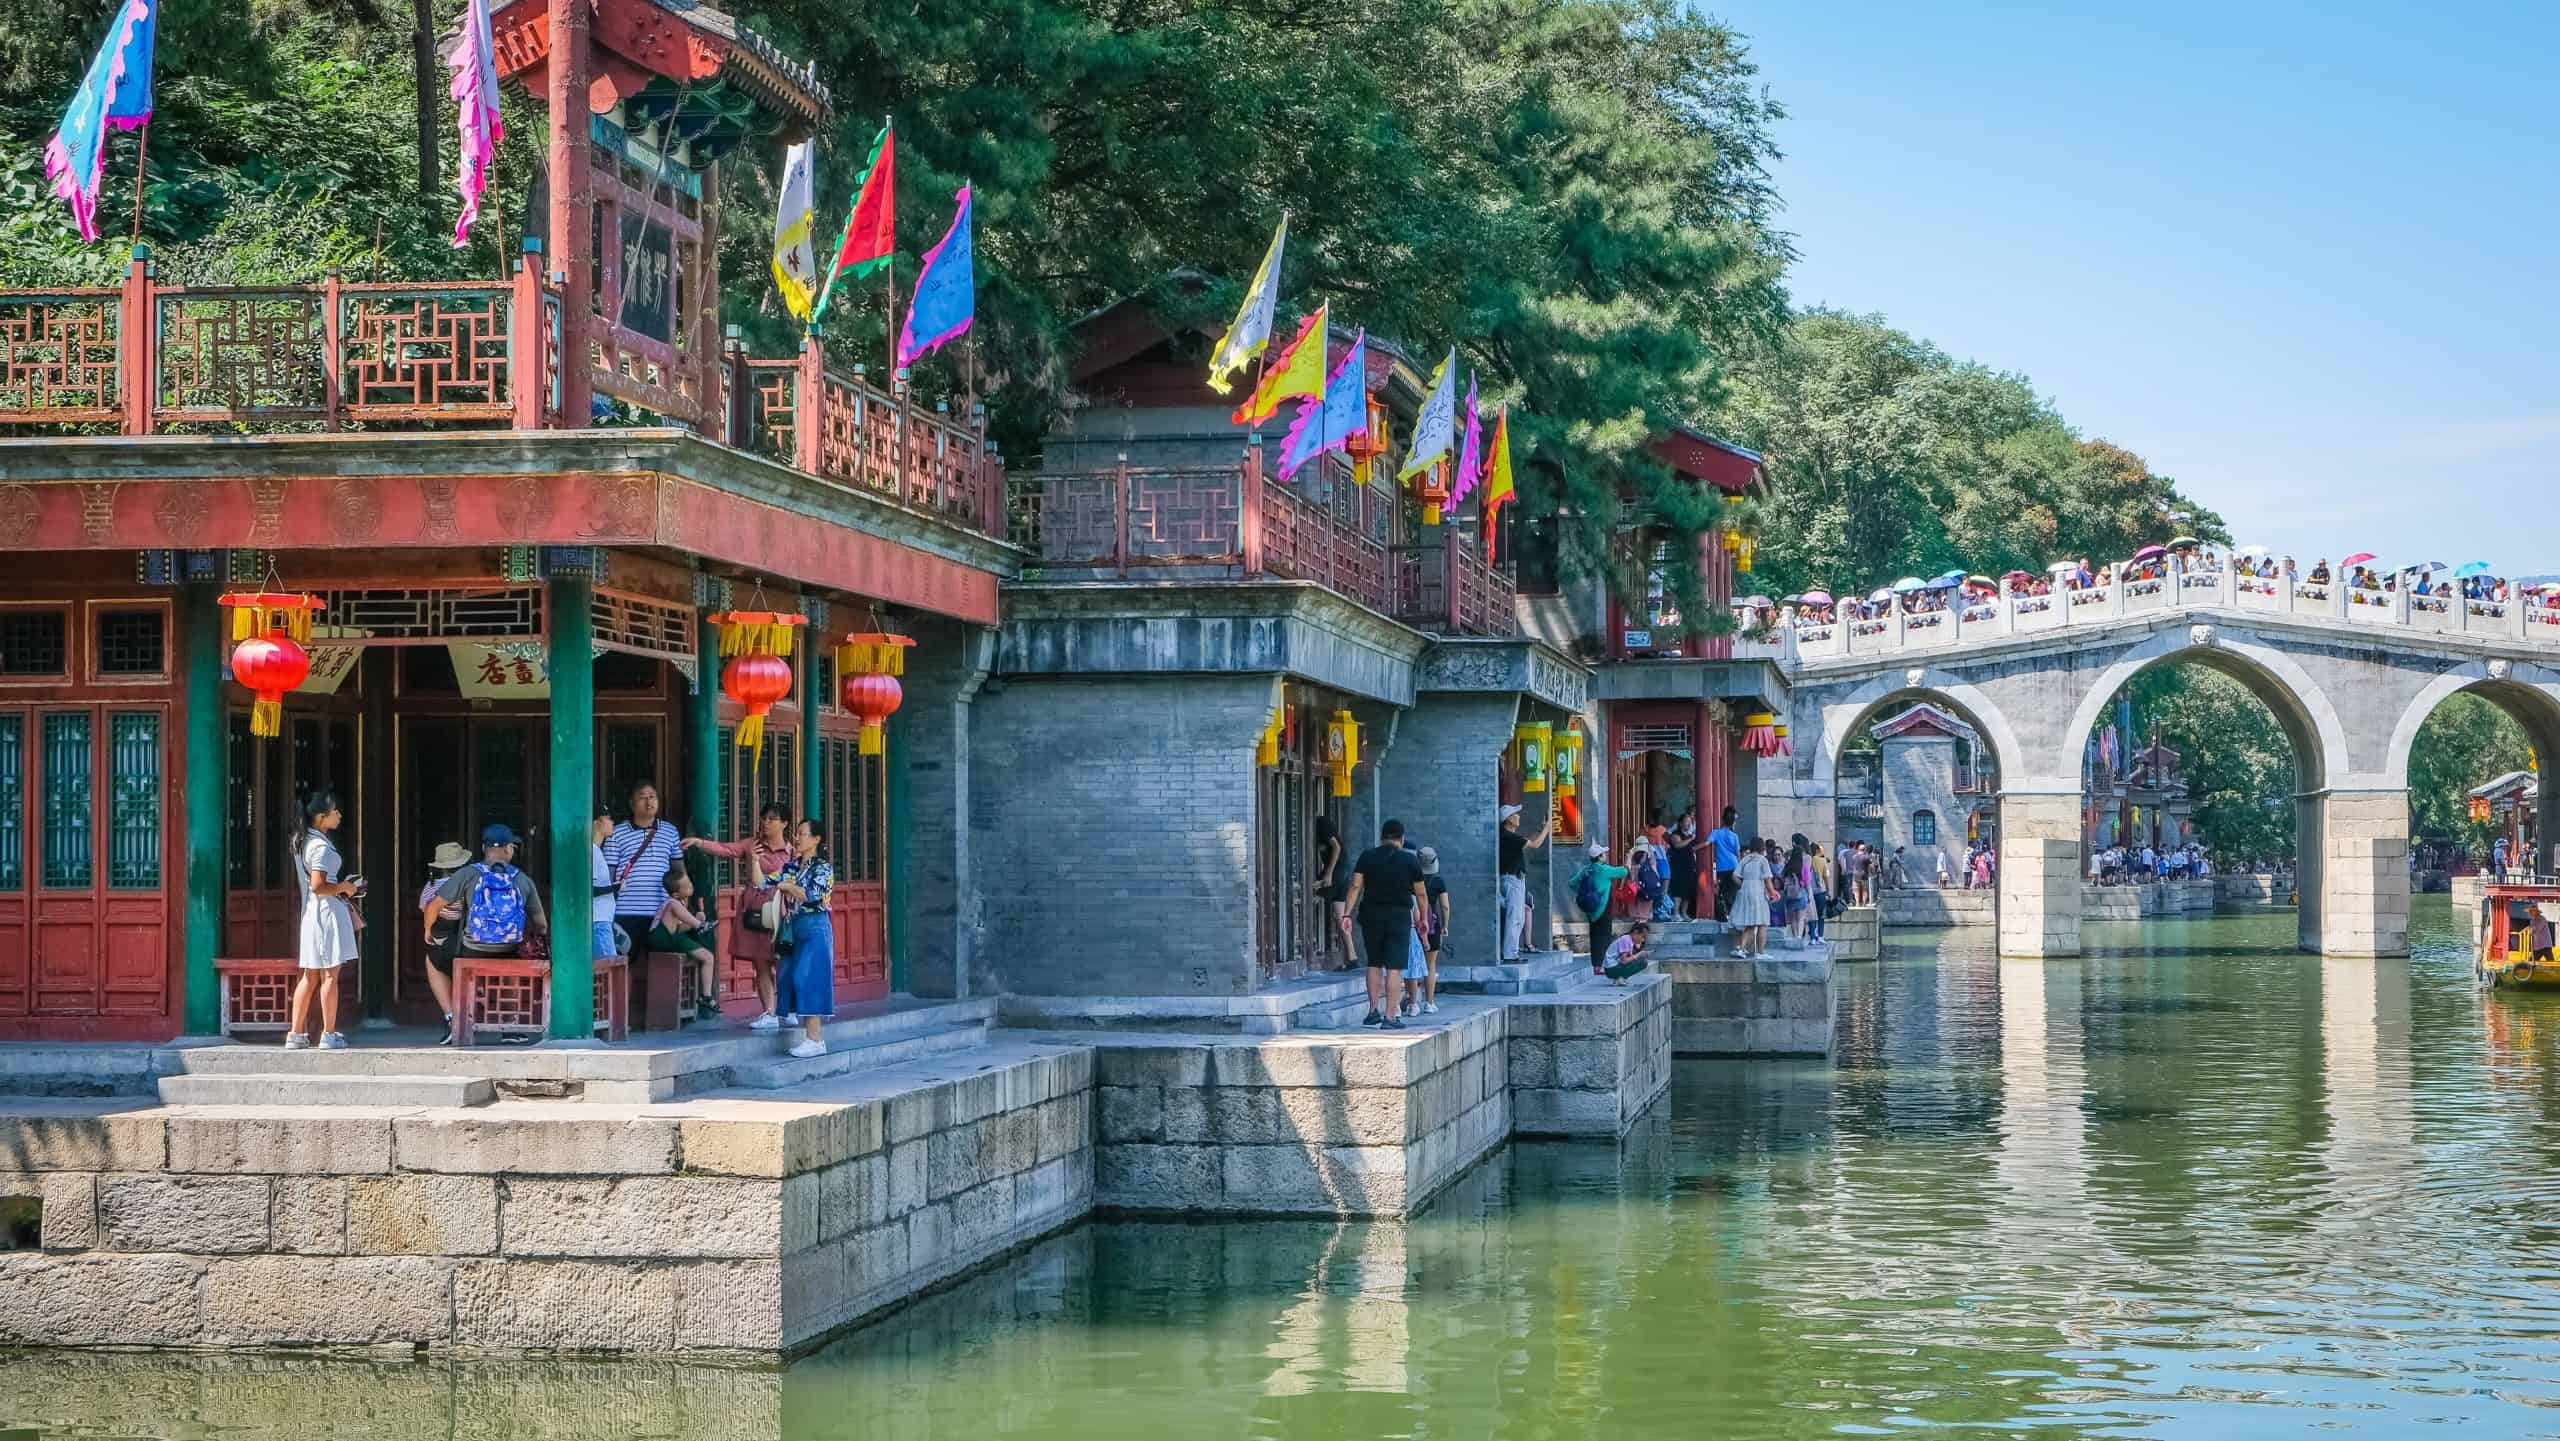 Tourism In China: The Largest Country Of Asia